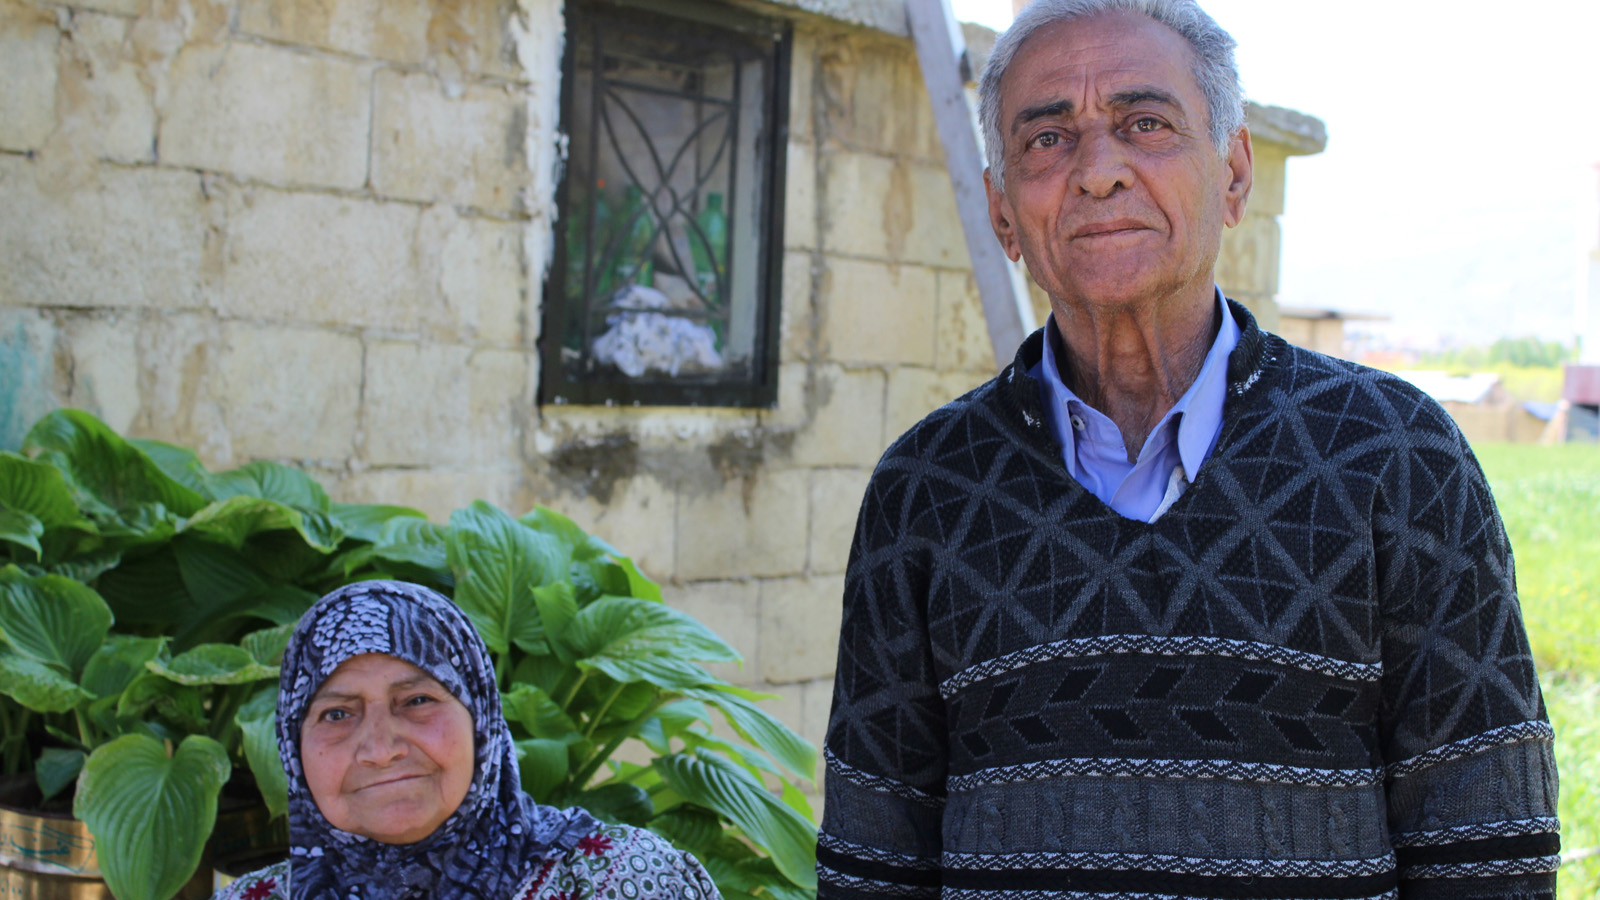 Sadika and Mohammad fled the conflict in Syria after Yarmouk neighbourhood, just outside the capital Damascus, was bombed in December 2012. They now live with a Lebanese family that has been hosting them in the Beka'a Valley for five months.